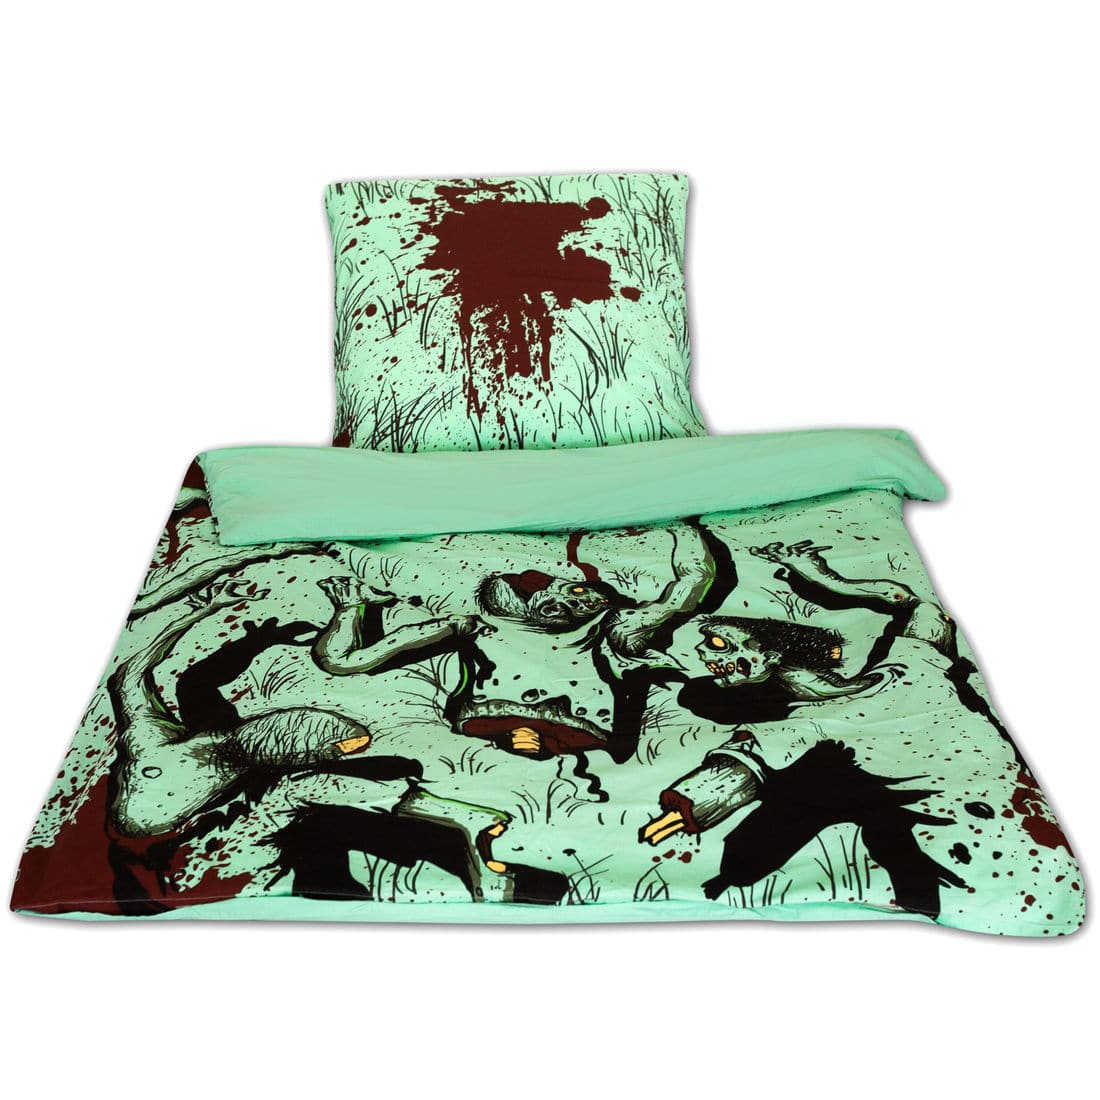 zombie bettw sche ab 44 g nstig kaufen 02 2018. Black Bedroom Furniture Sets. Home Design Ideas